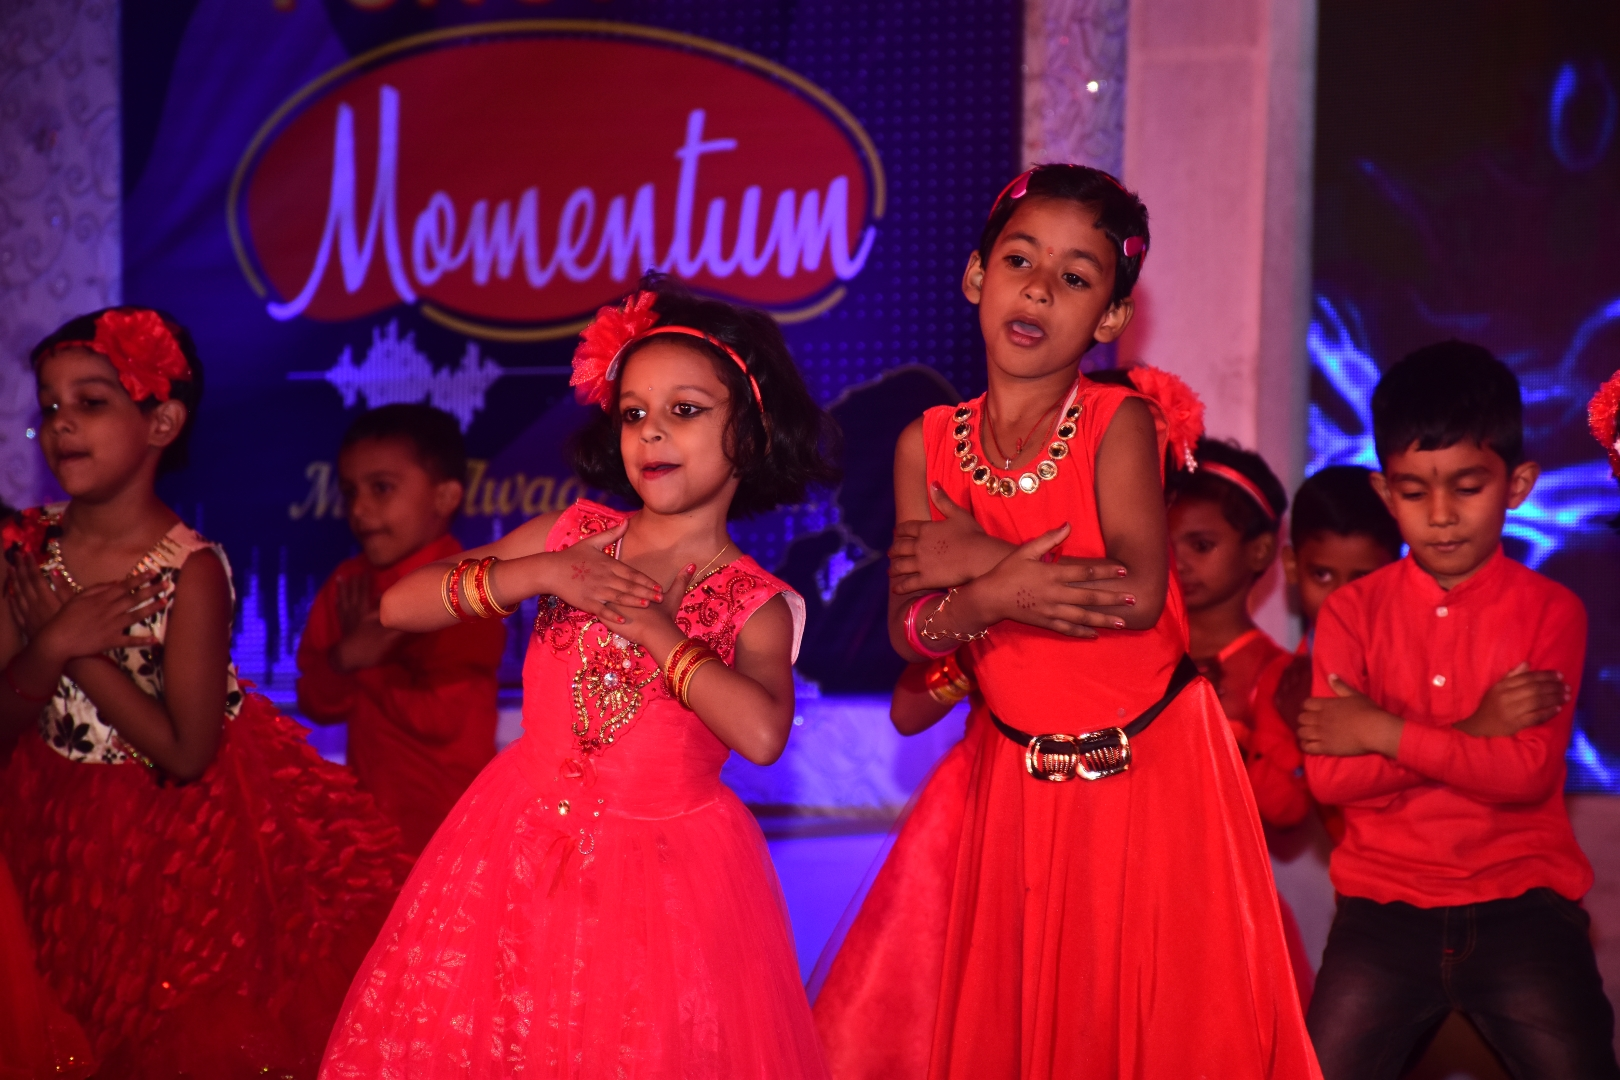 5th Annual Function Momentum 2k18 - 2018